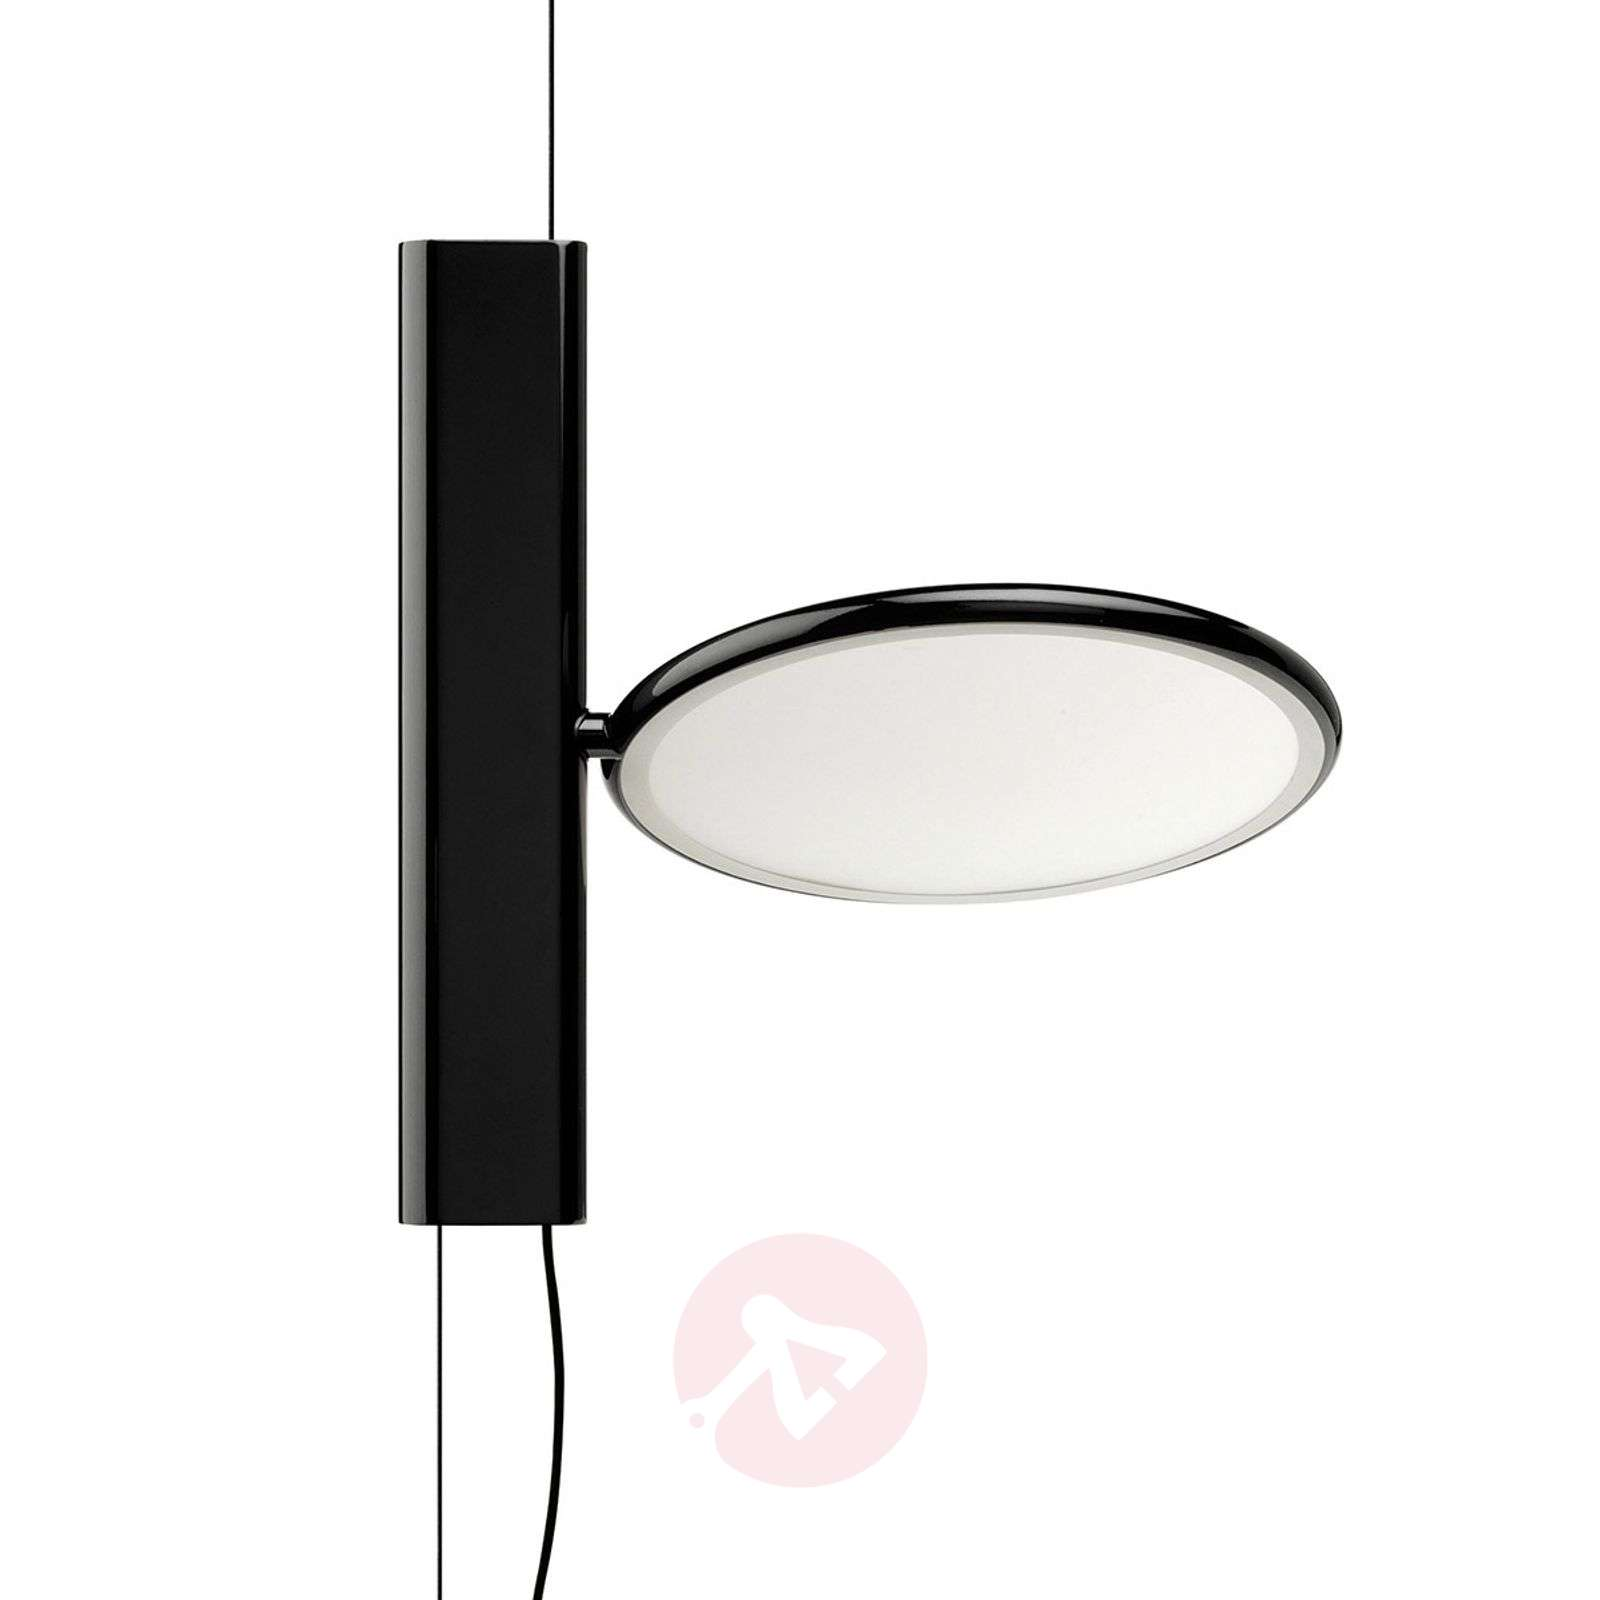 Upright OK LED Pendant Lamp-3510309X-03